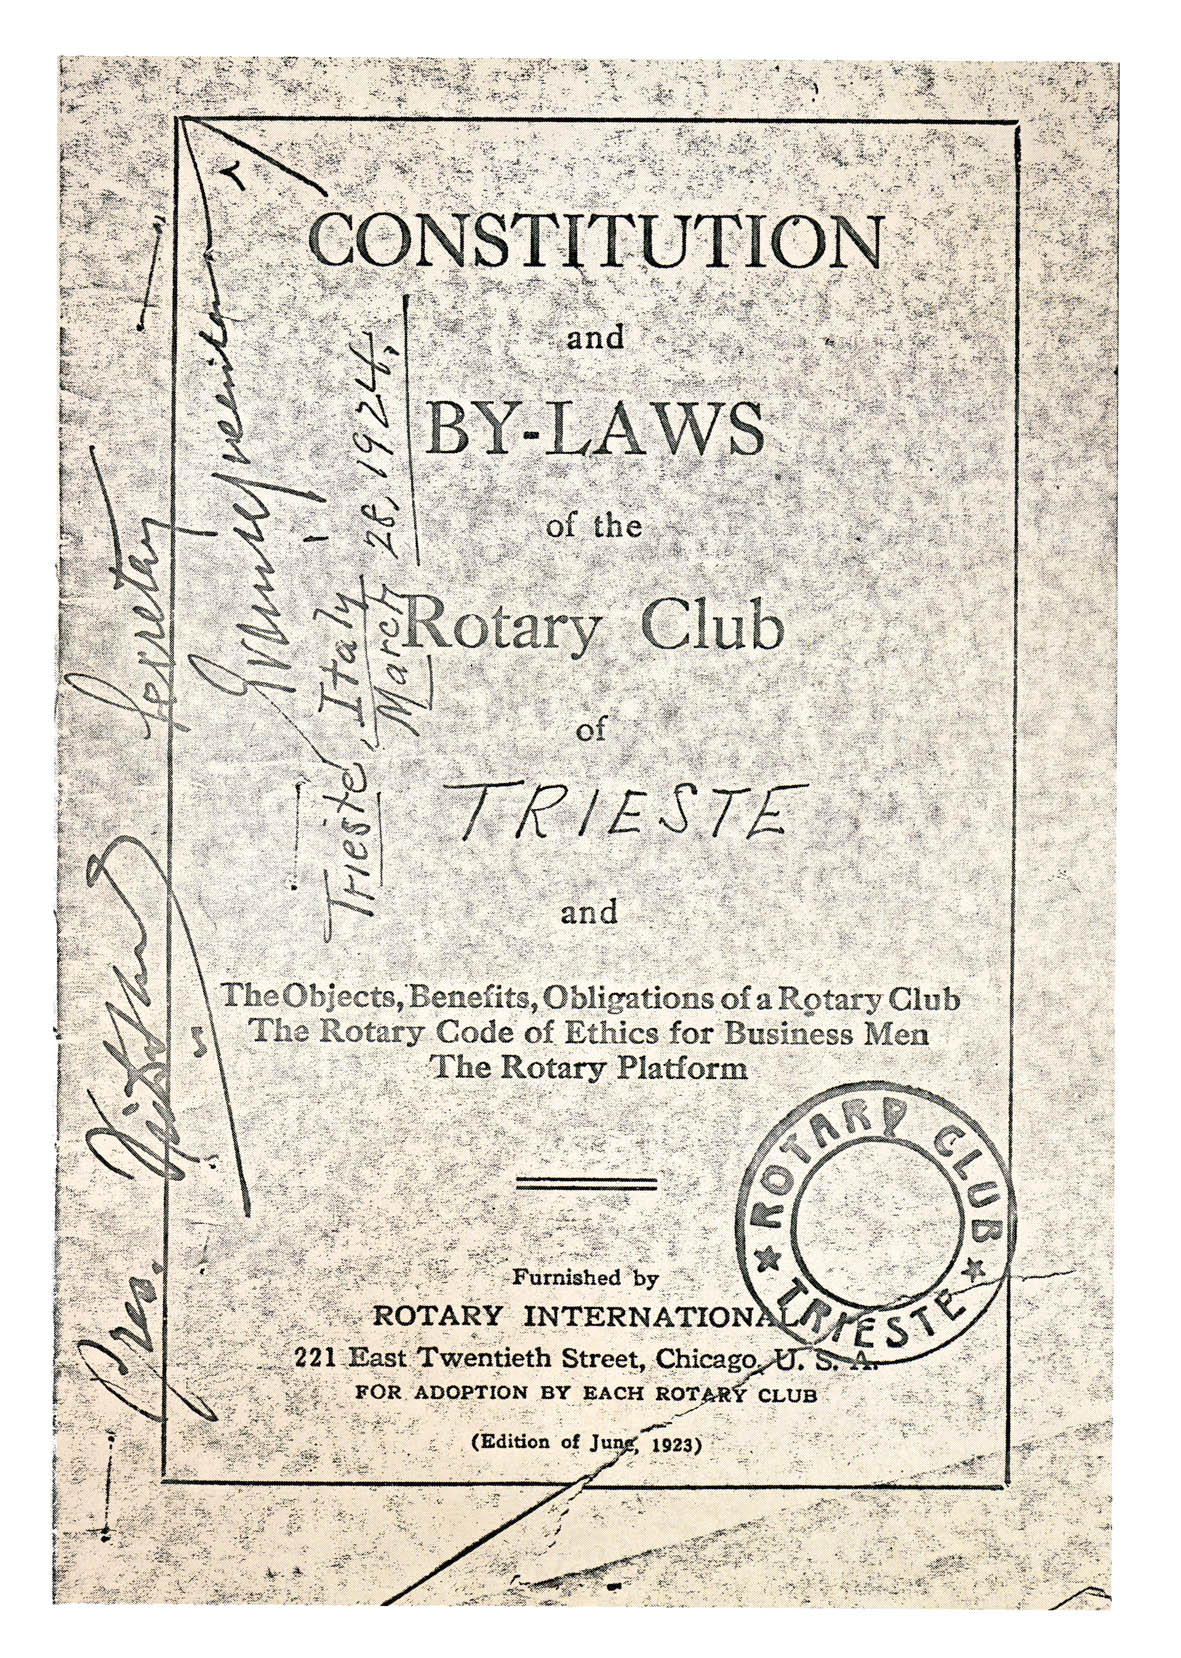 CONSTITUTION Rotary Club Trieste